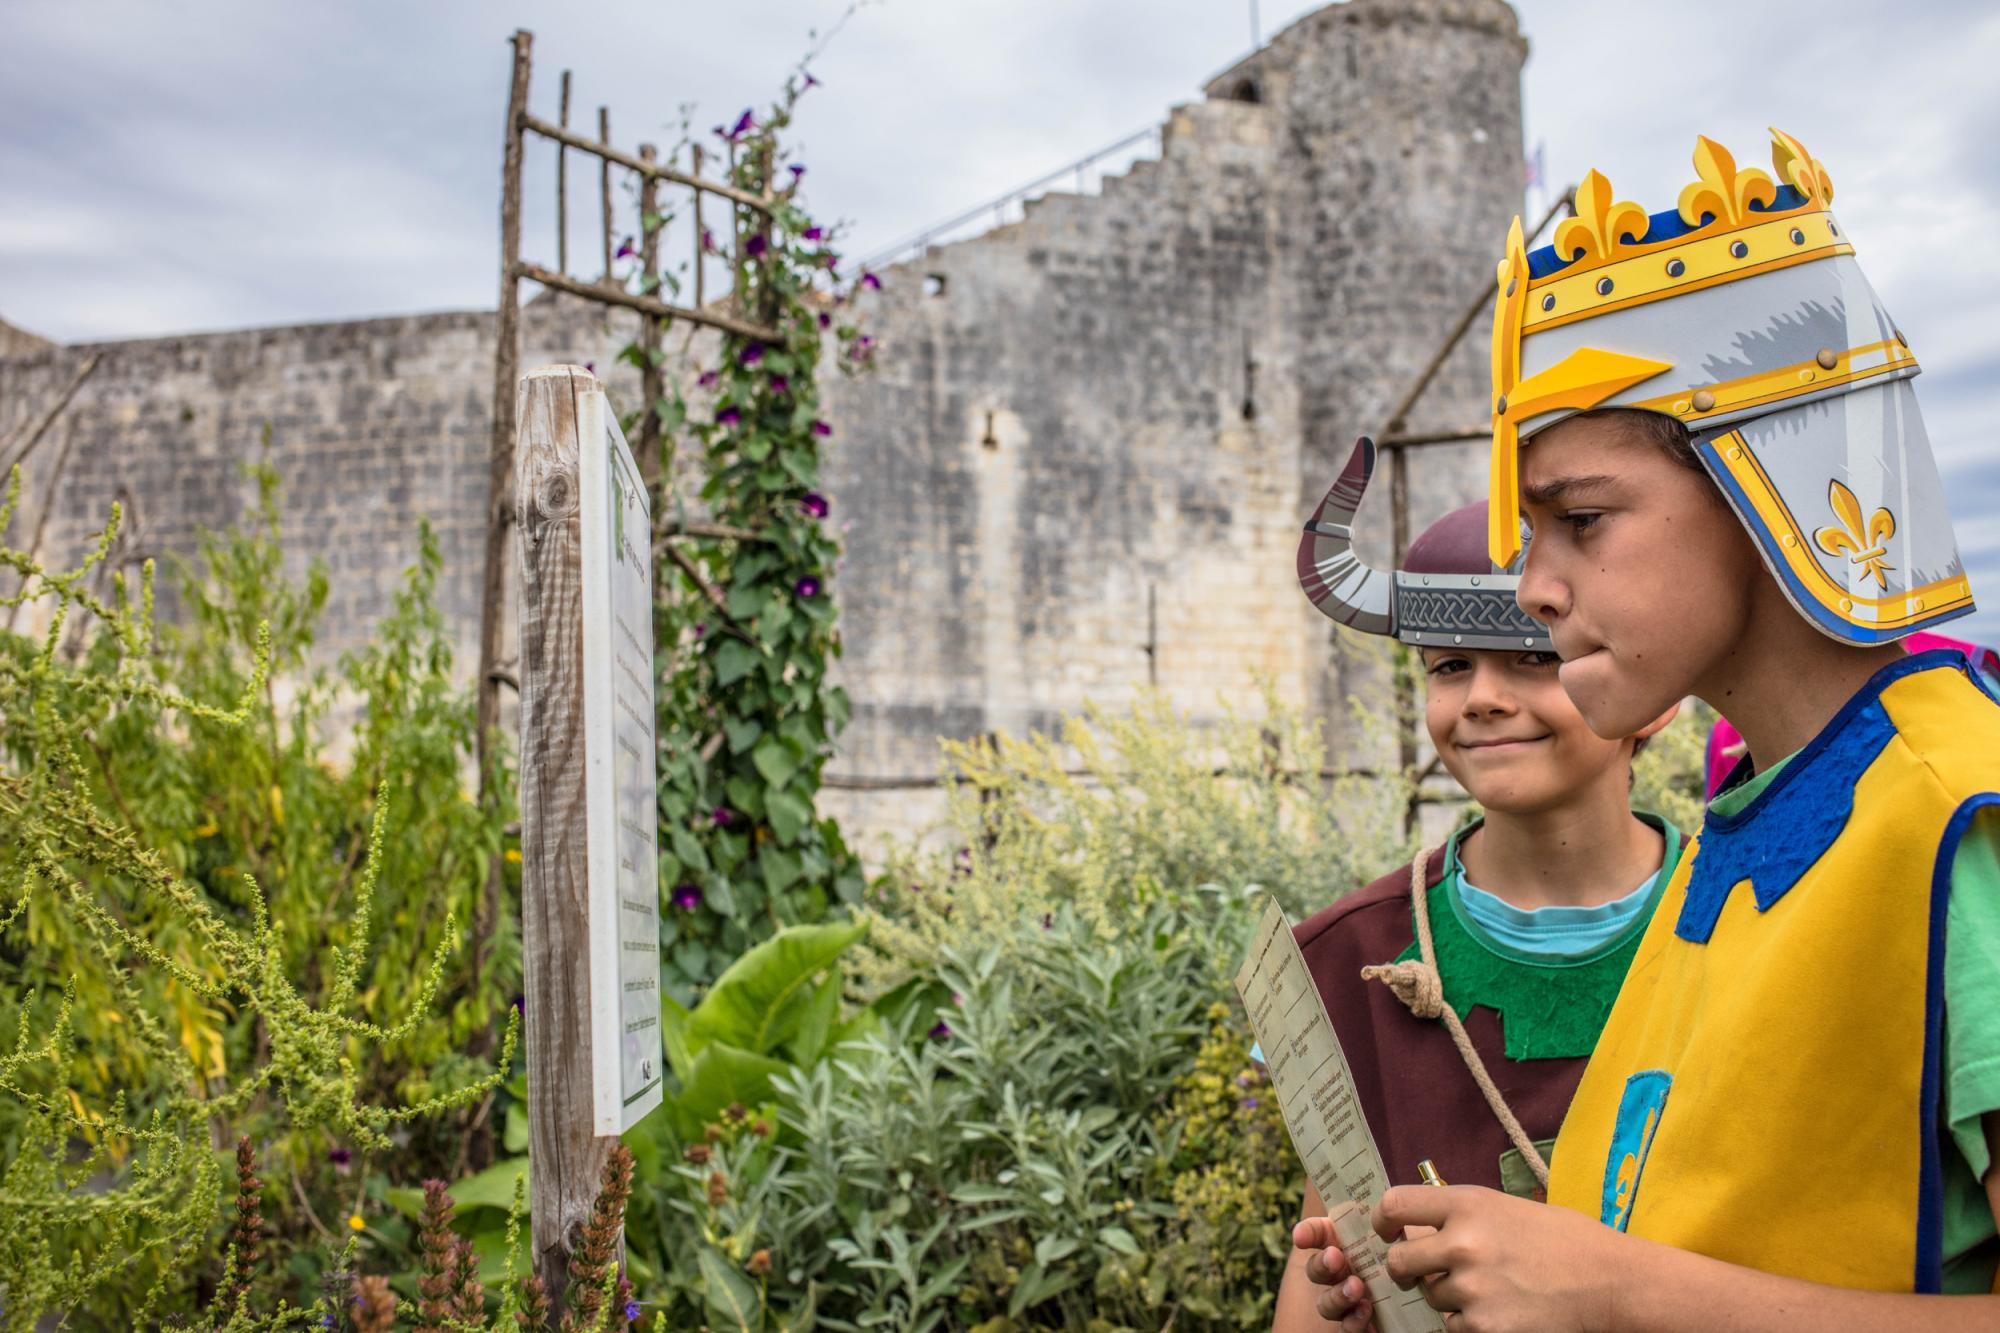 A giant puzzle - Fortified castle and medieval theme park in Charente Maritime